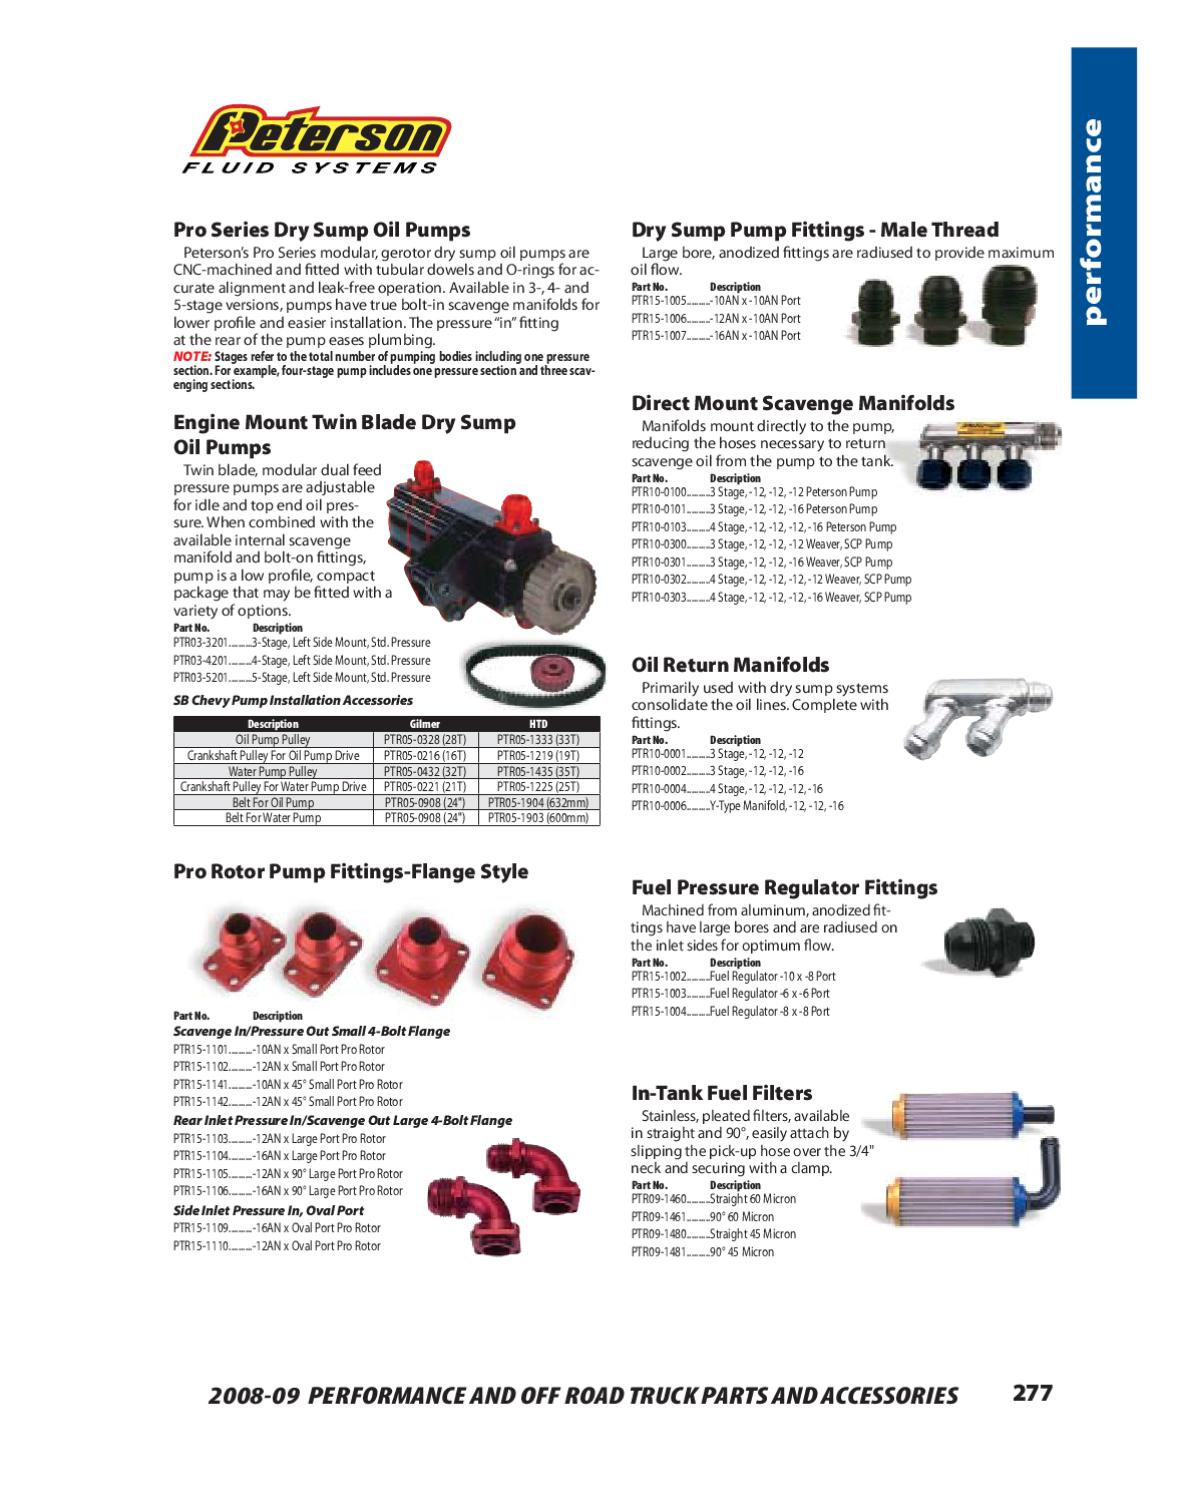 2010 Truck Catalog By Timothy Meyer Issuu Peterson Fuel Filters